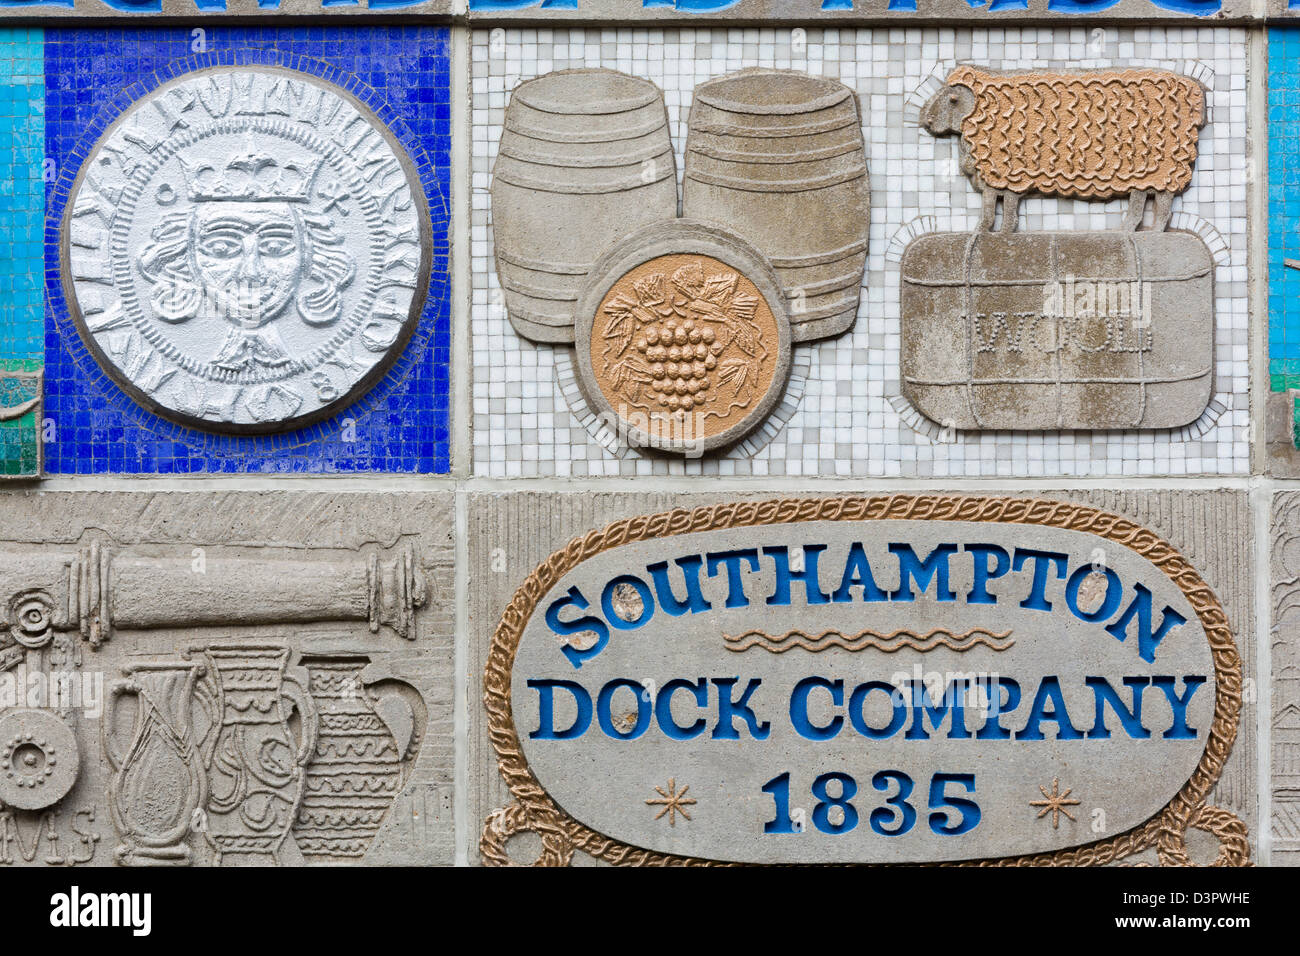 Mosaic on Castle House by Henry Collins,Southampton,Hampshire County,England,United Kingdom - Stock Image